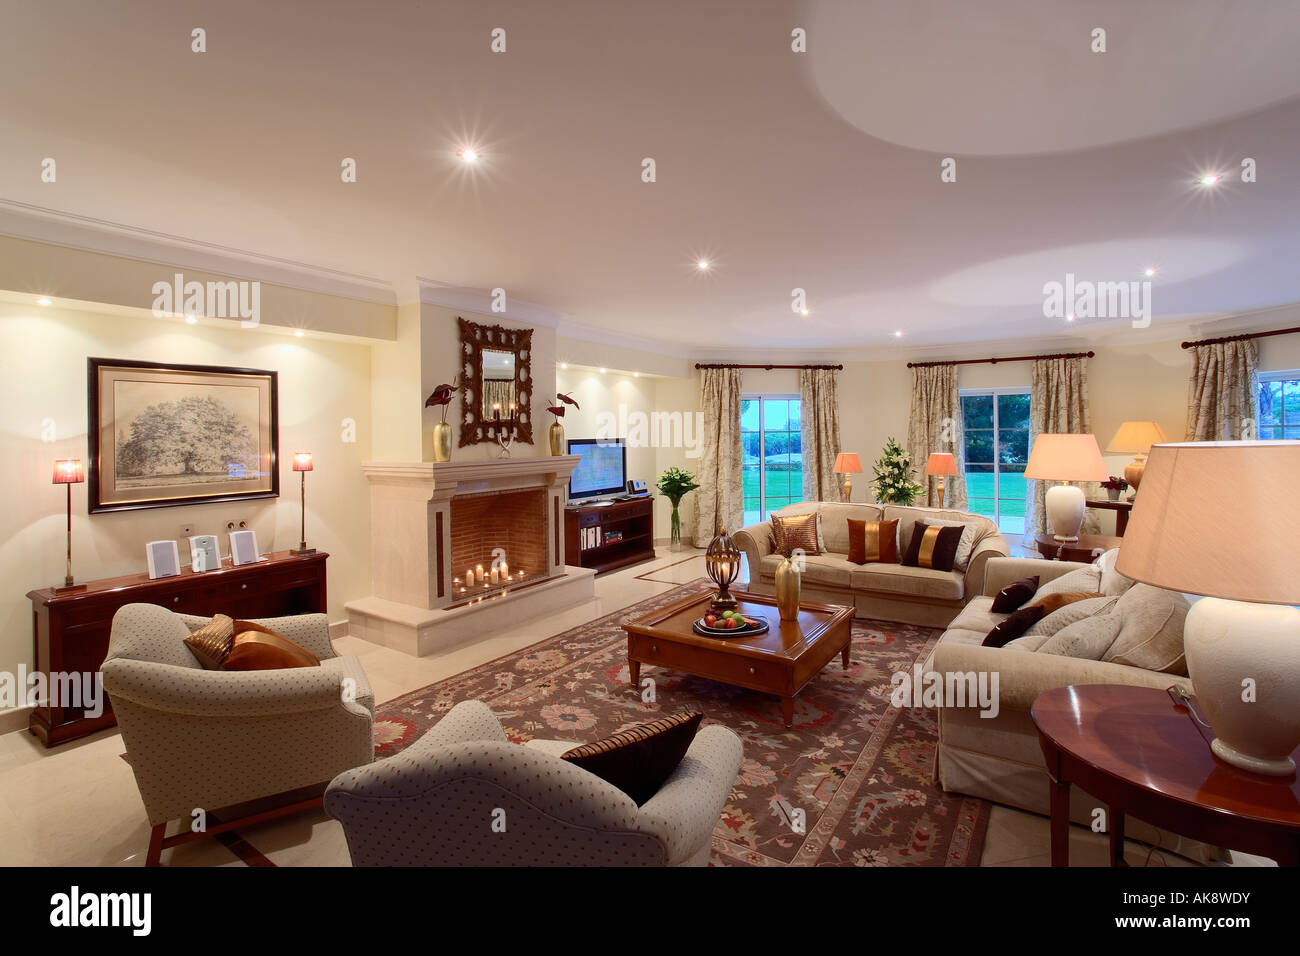 Beige Armchairs And Sofas In Portuguese Living Room With Downlighting